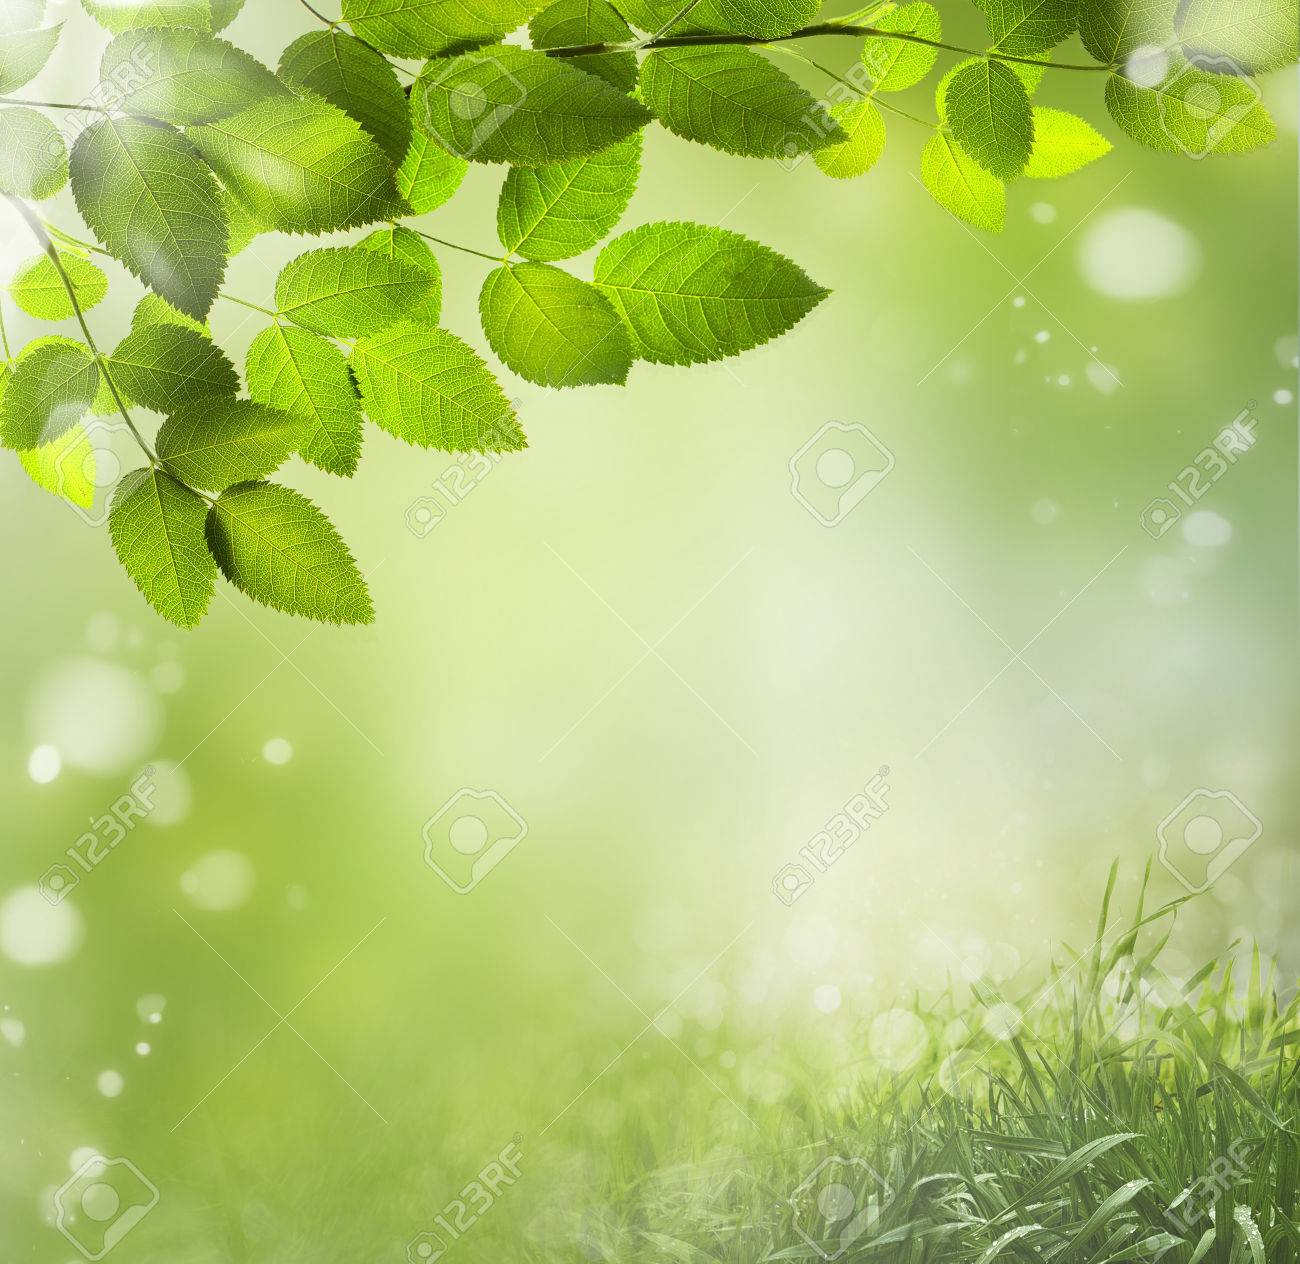 spring or summer season abstract nature background stock photo